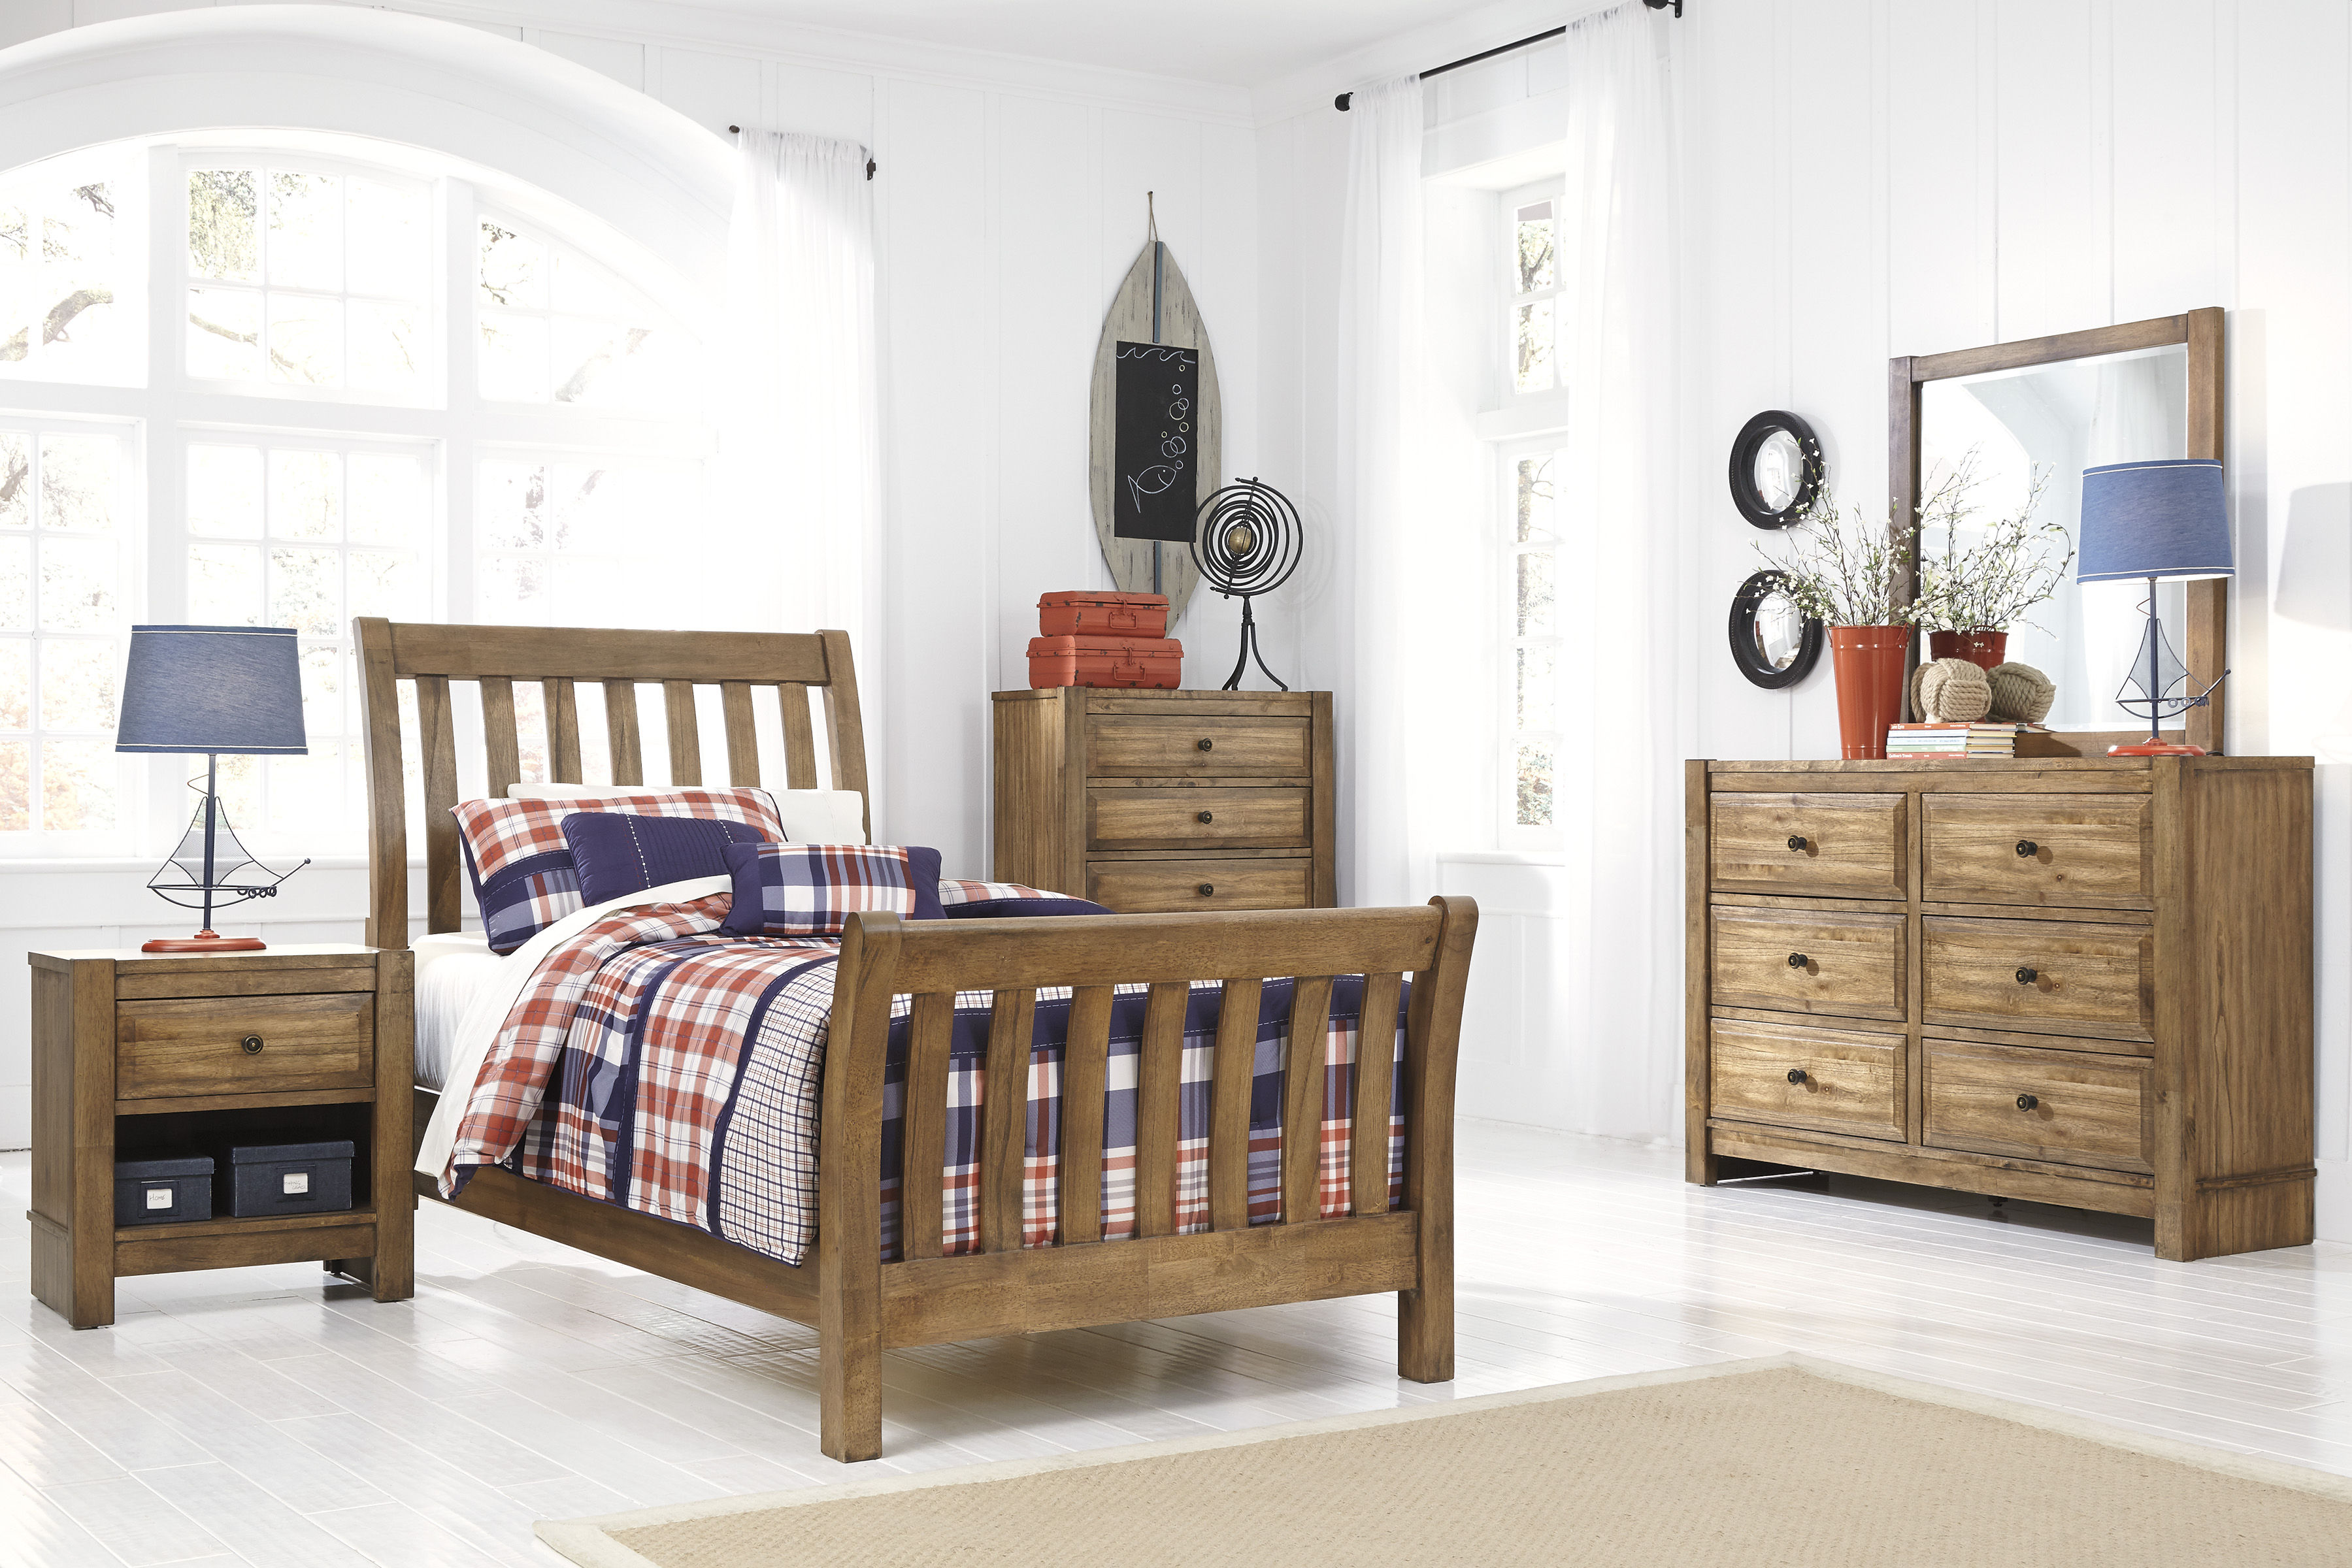 birnalla contemporary light brown wood 4pc bedroom set w twin bed the classy home. Black Bedroom Furniture Sets. Home Design Ideas